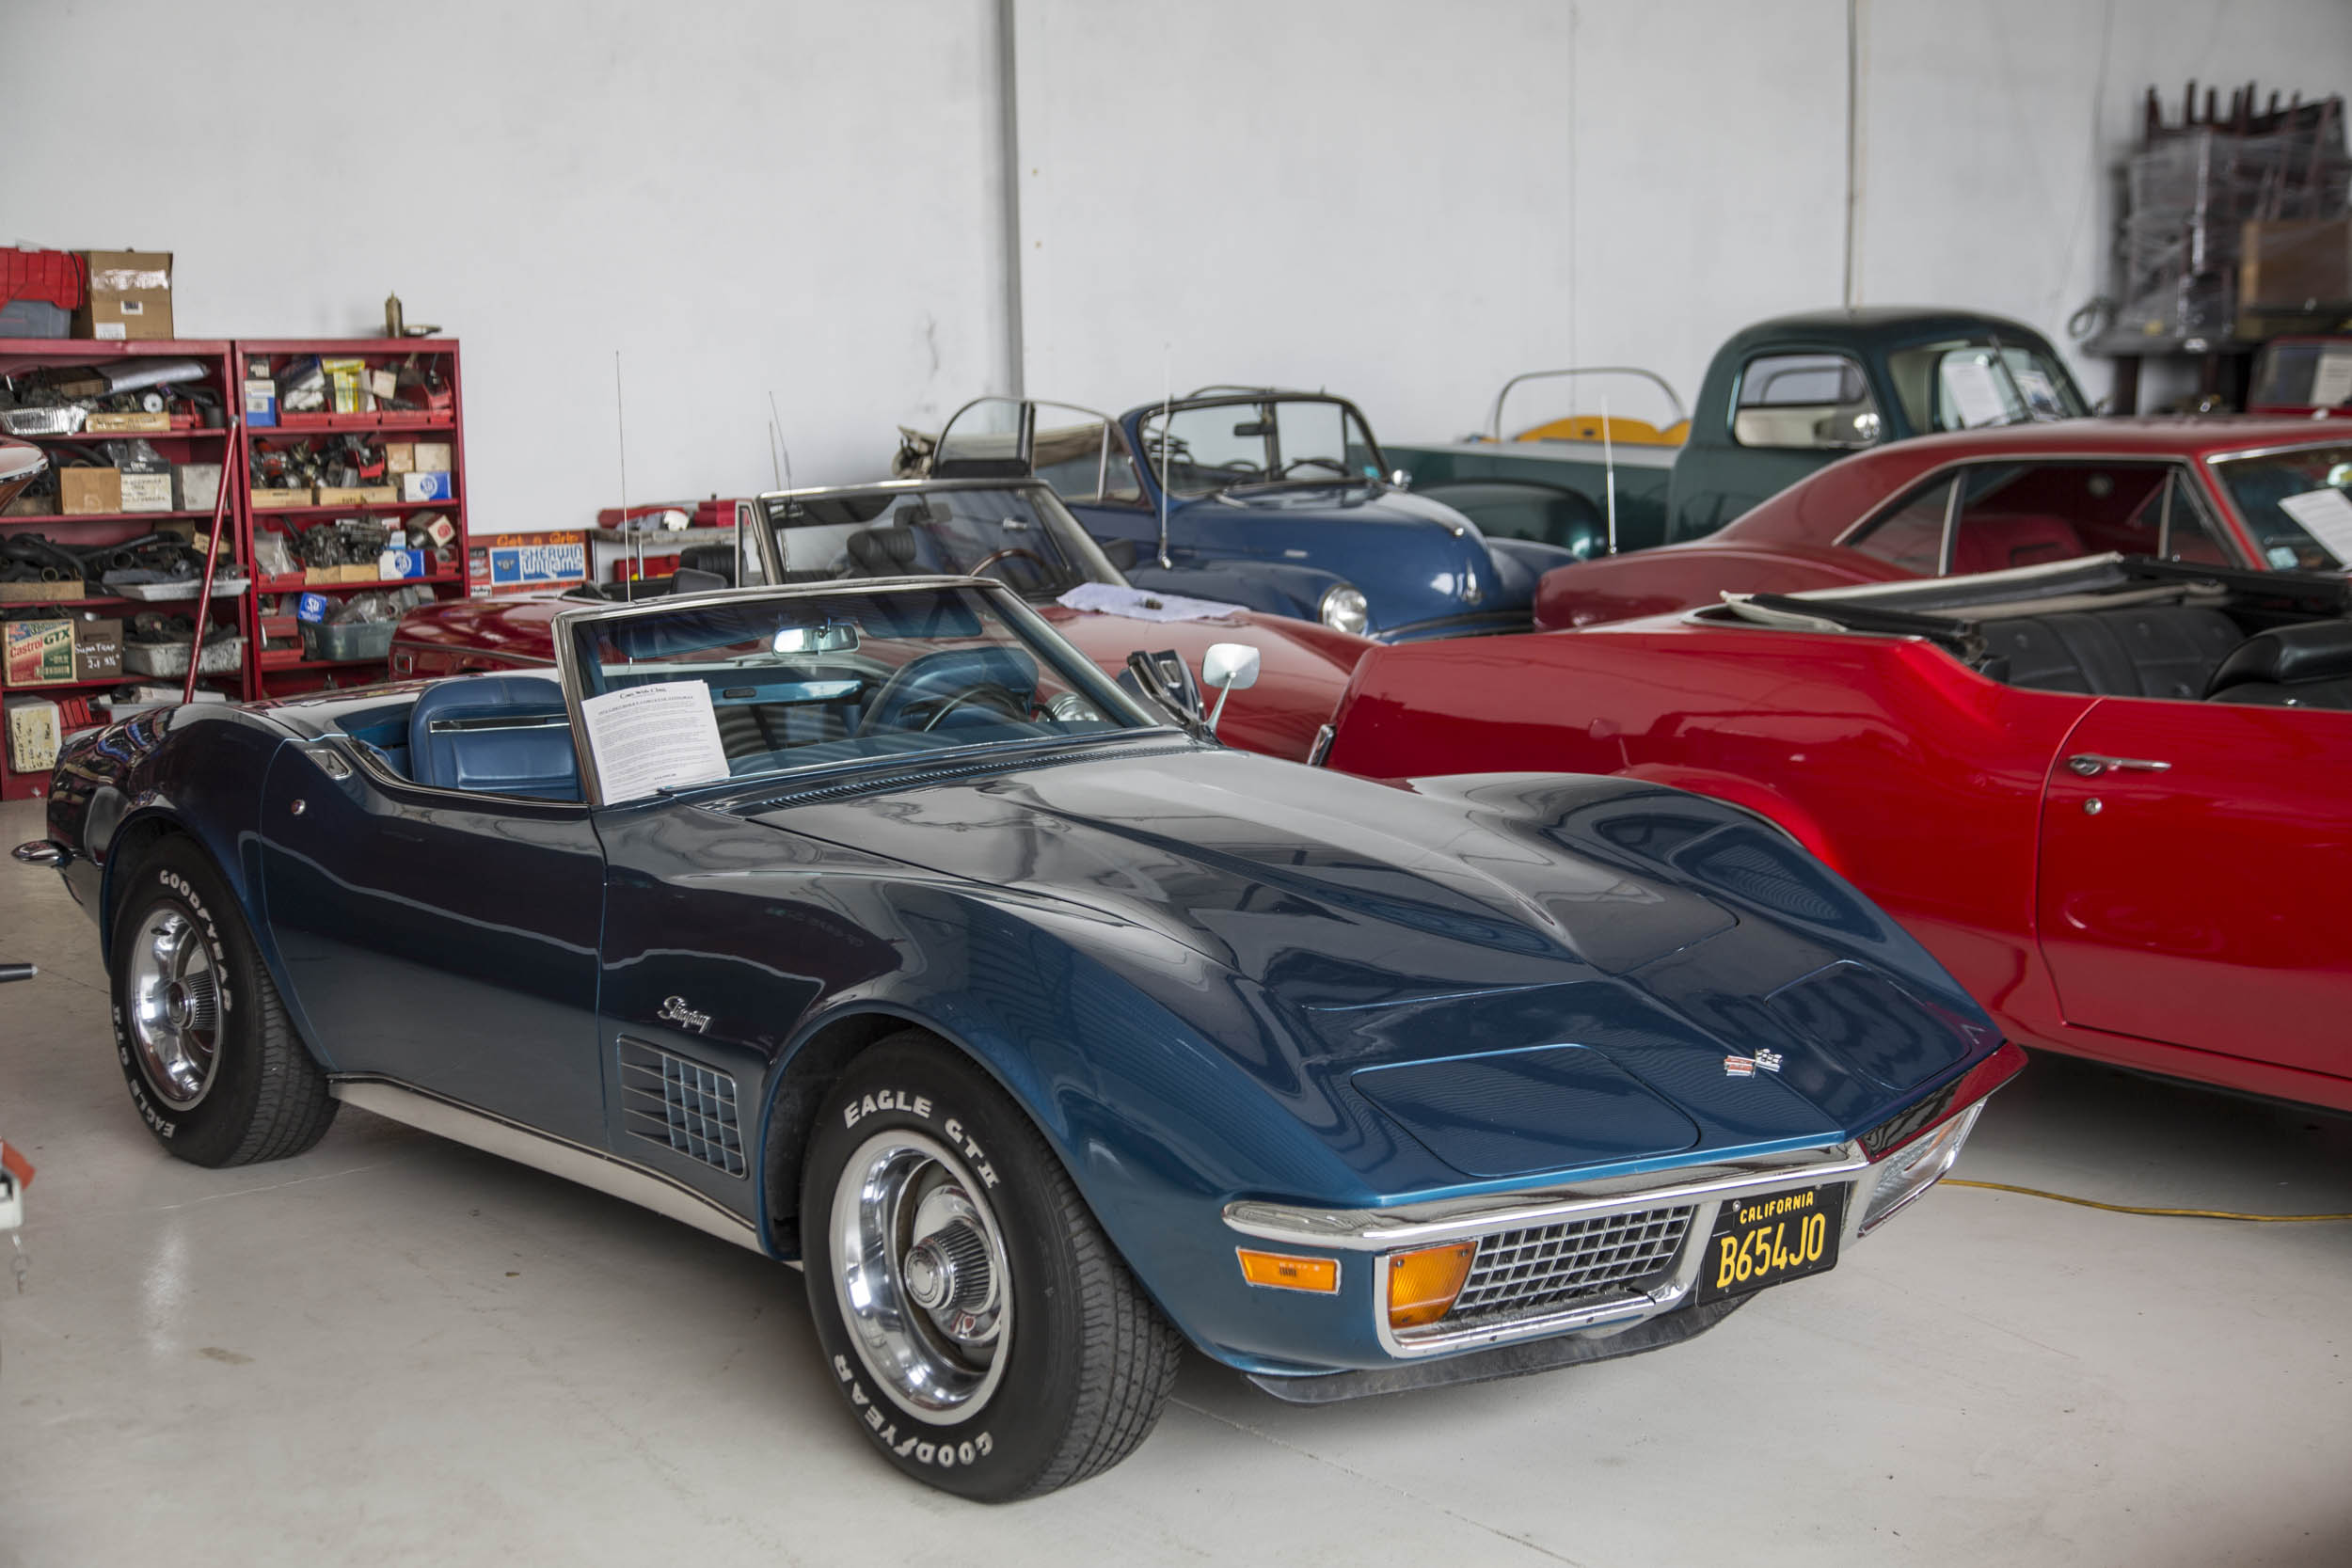 Corvette at Cars With Class